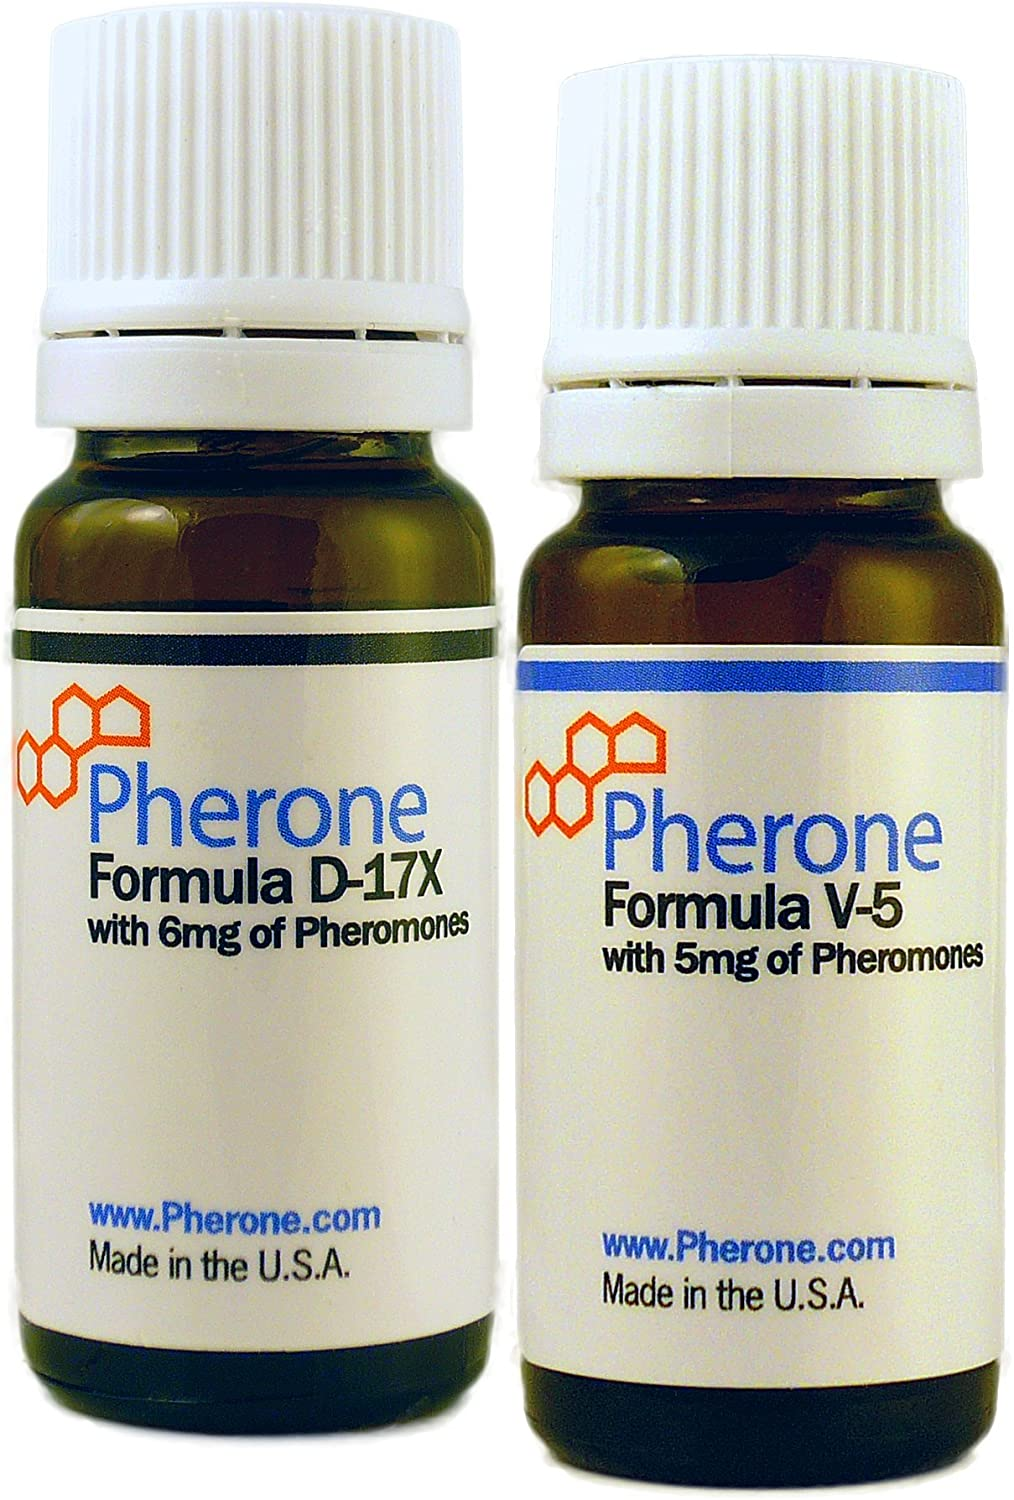 Pherone Special Discounted Bundle B-175 for Men to Attract Women, with Pheromone Cologne Formulas D-17X and V-5 - Pure Human Pheromones